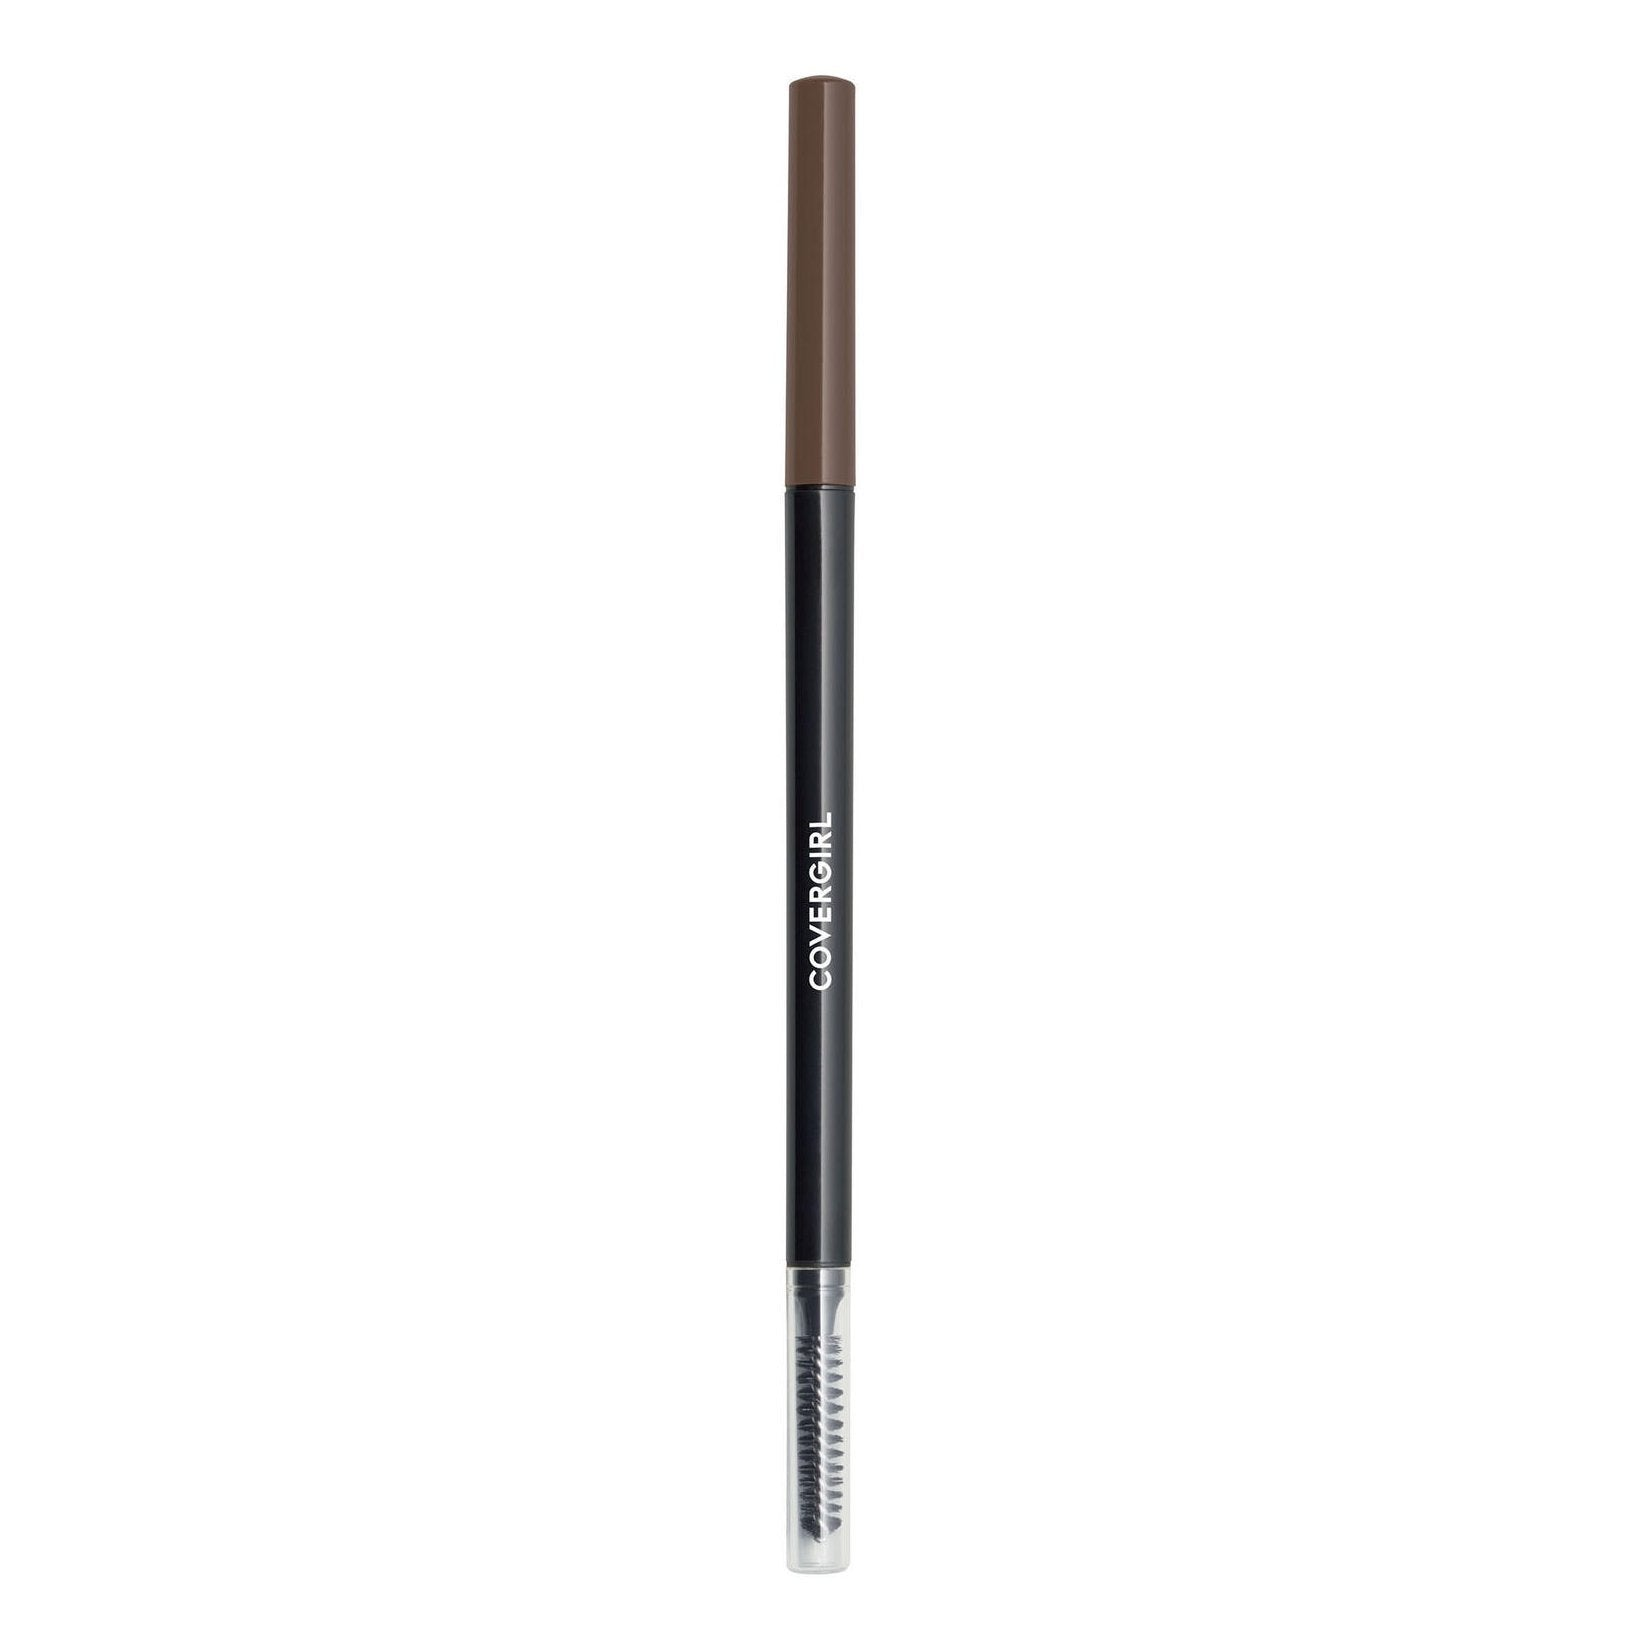 Covergirl Easy Breezy Brow Micro-Fine & Define Pencil | Honey Brown